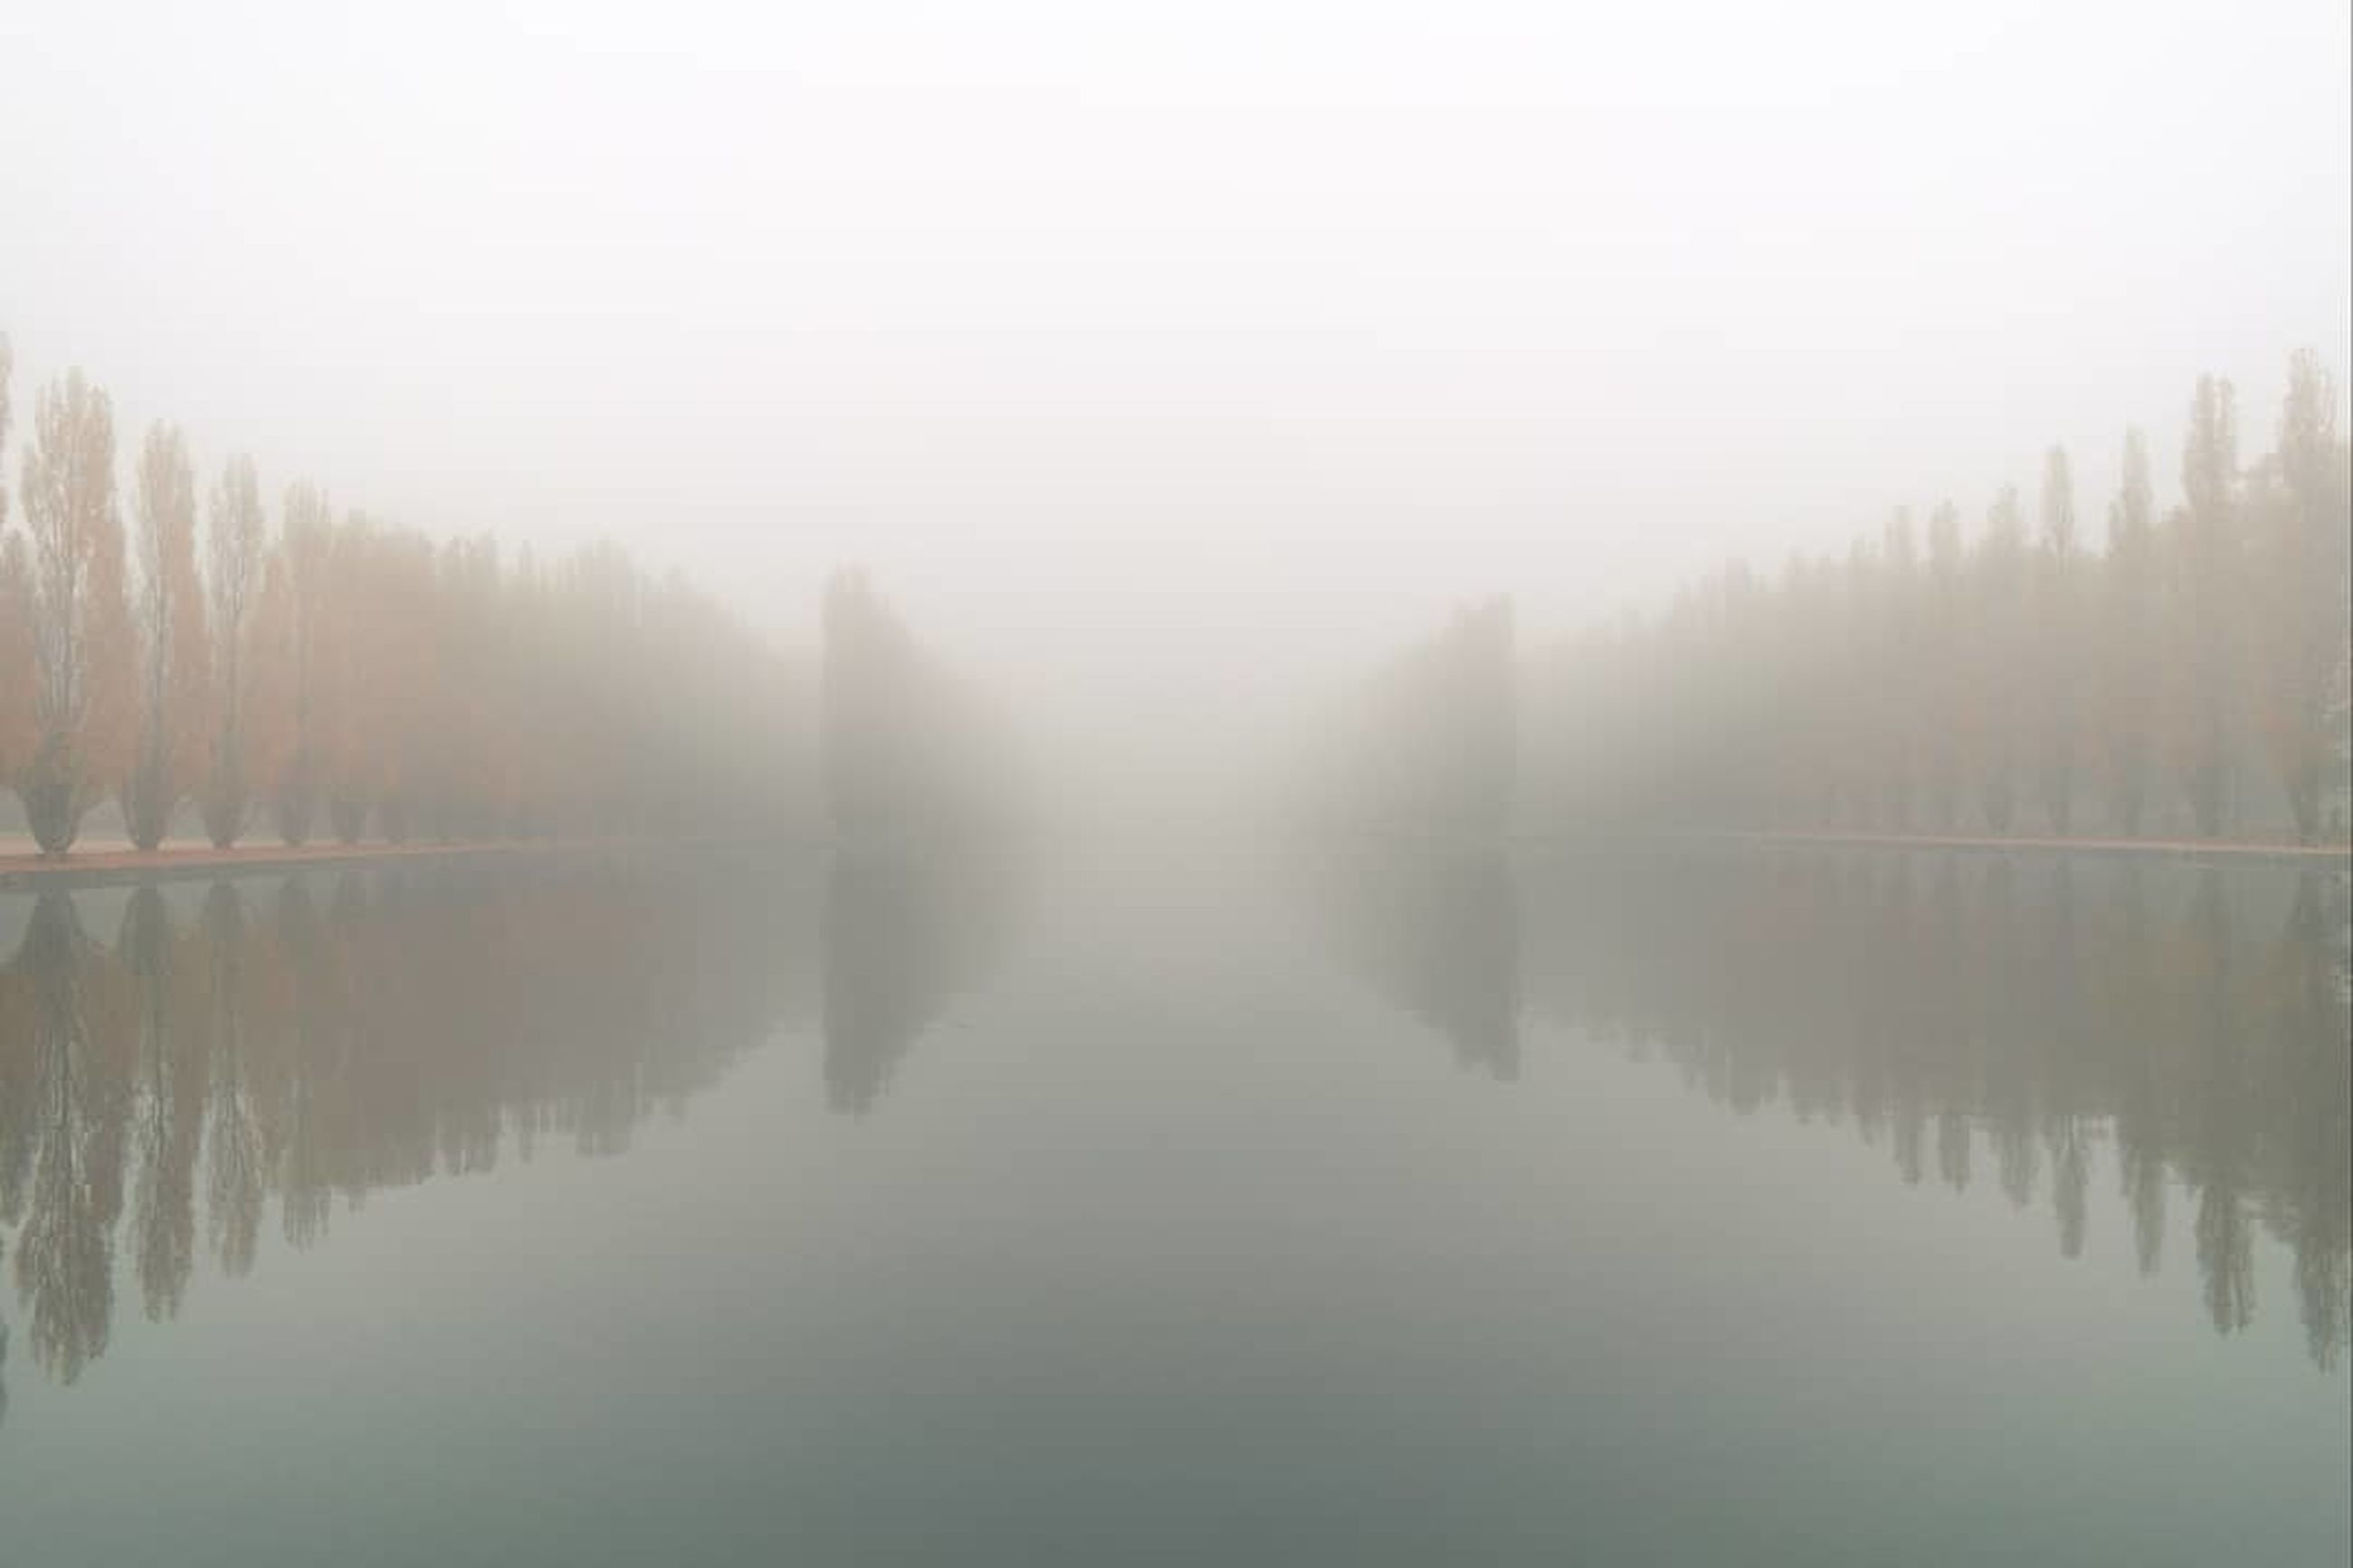 mist, fog, reflection, water, tranquility, lake, morning, tranquil scene, tree, beauty in nature, scenics - nature, nature, plant, no people, dawn, haze, sky, idyllic, forest, non-urban scene, day, outdoors, landscape, copy space, environment, sunrise, twilight